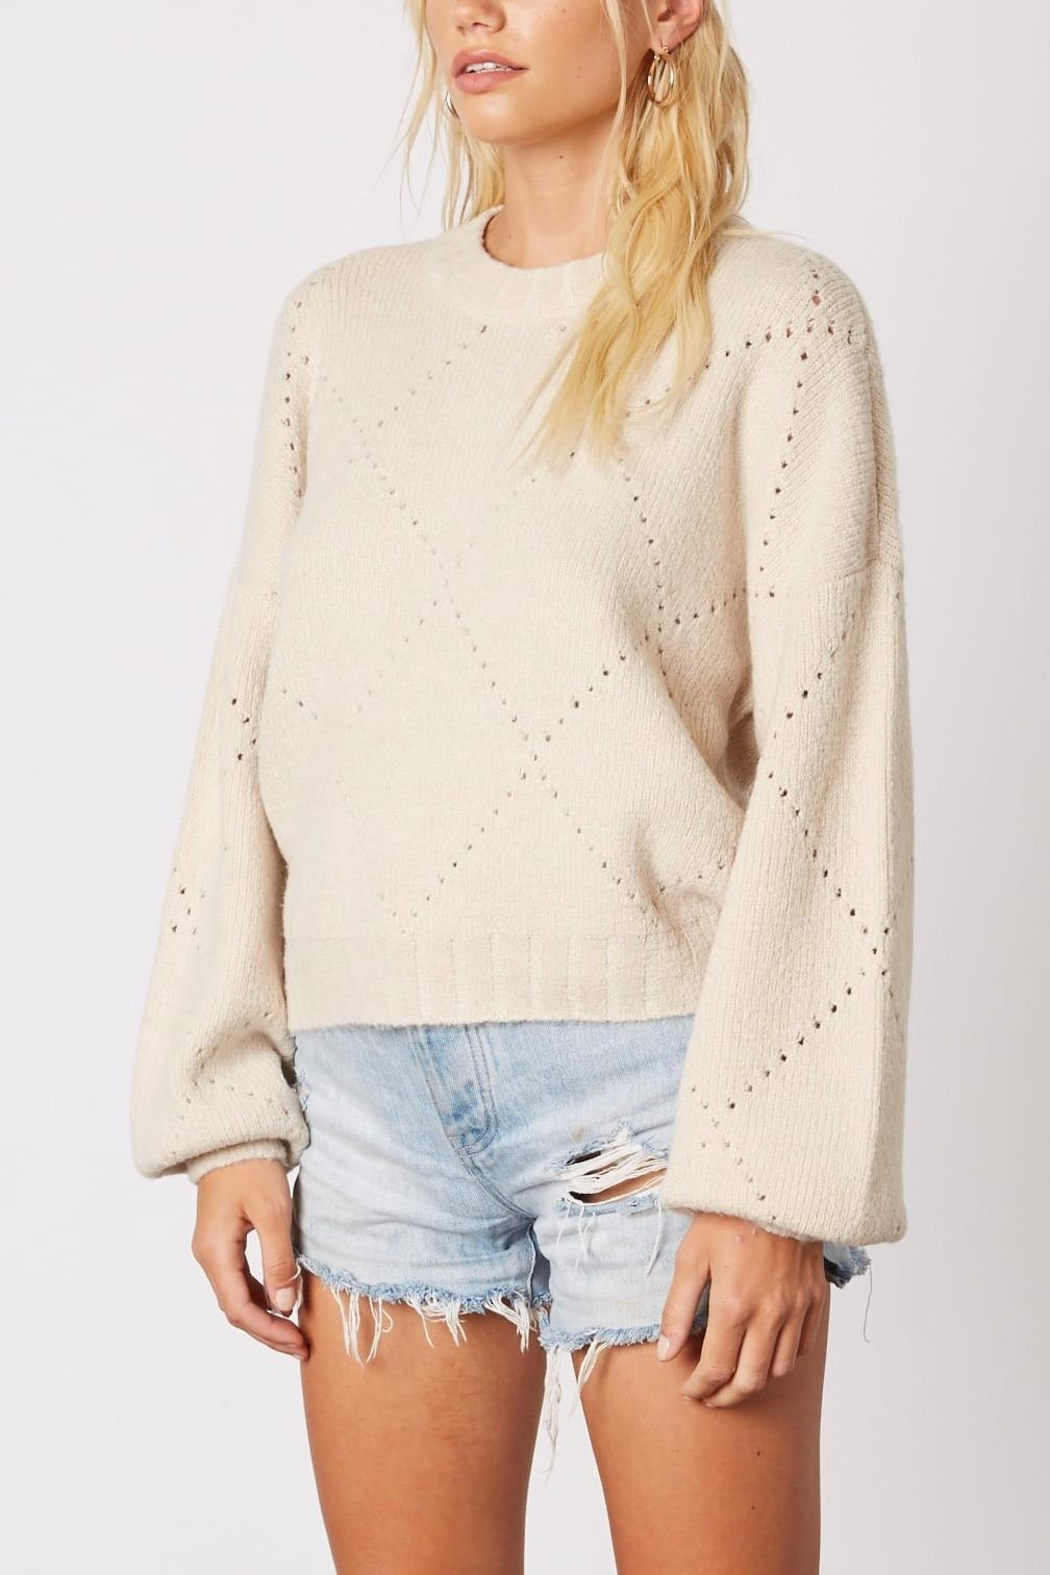 Cotton Candy LA Cream Pointelle Sweater - Side Cropped Image